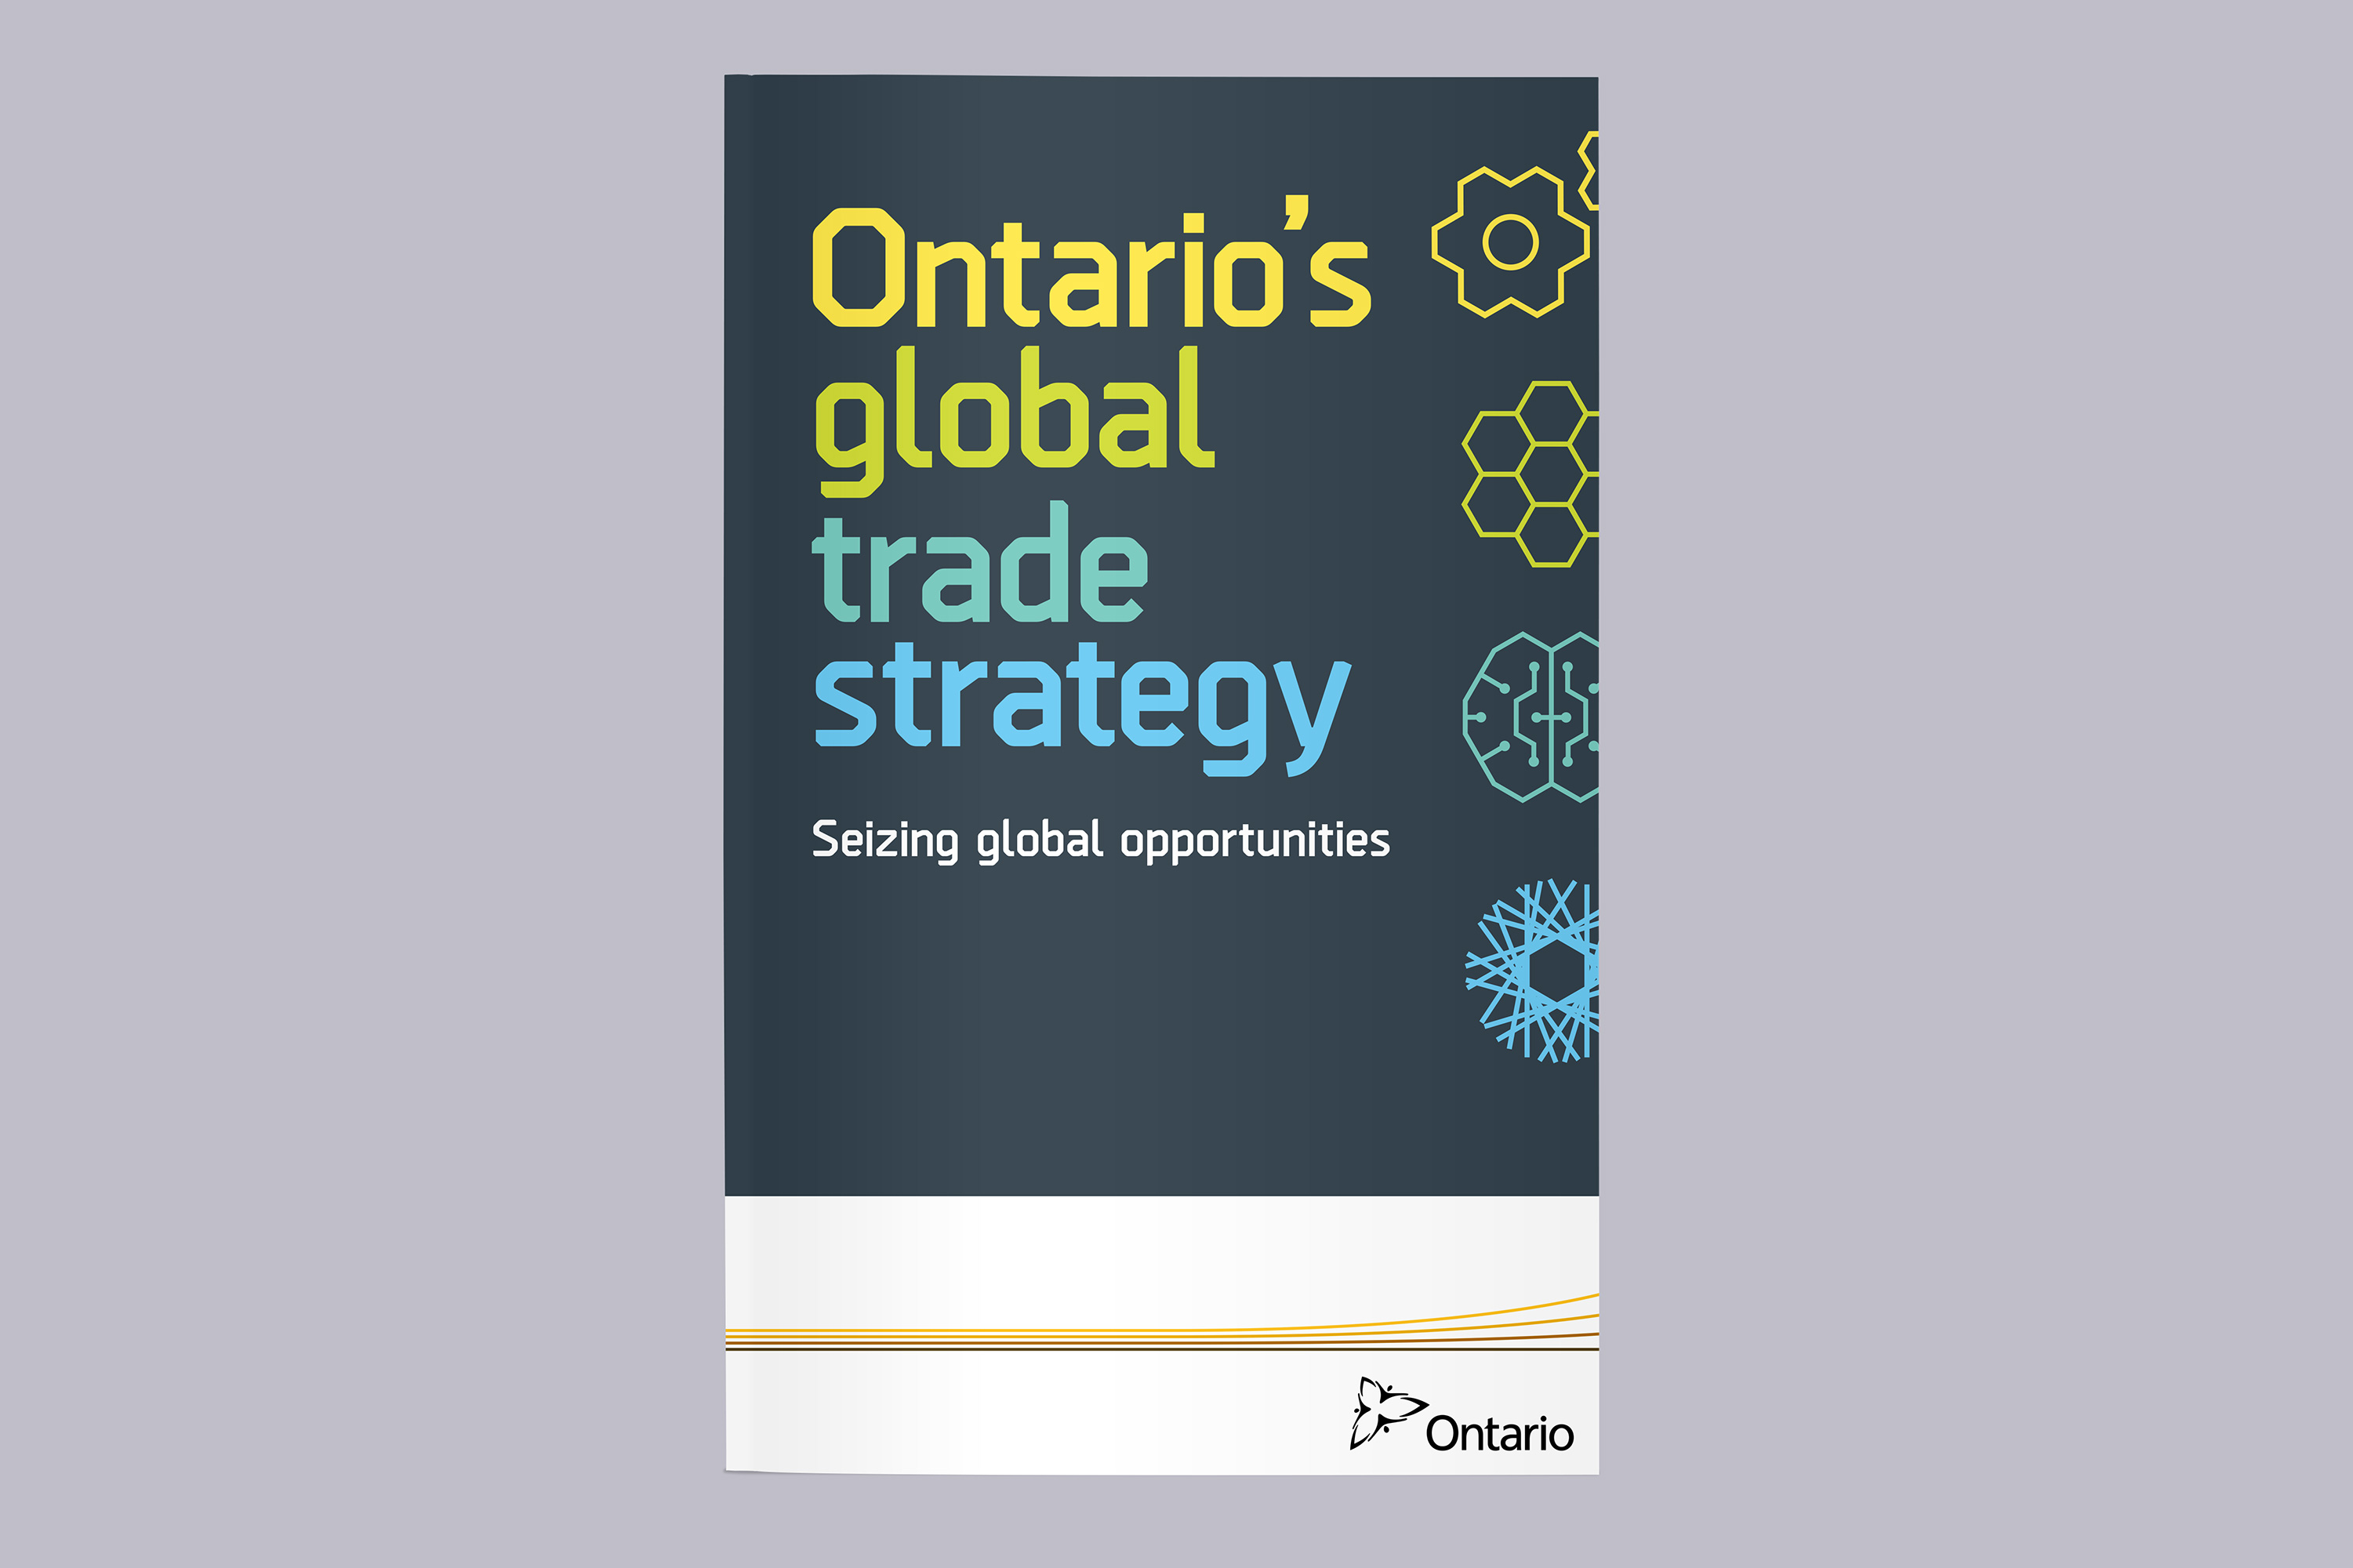 Ontario Ministry of International Trade - Global Trade Strategy